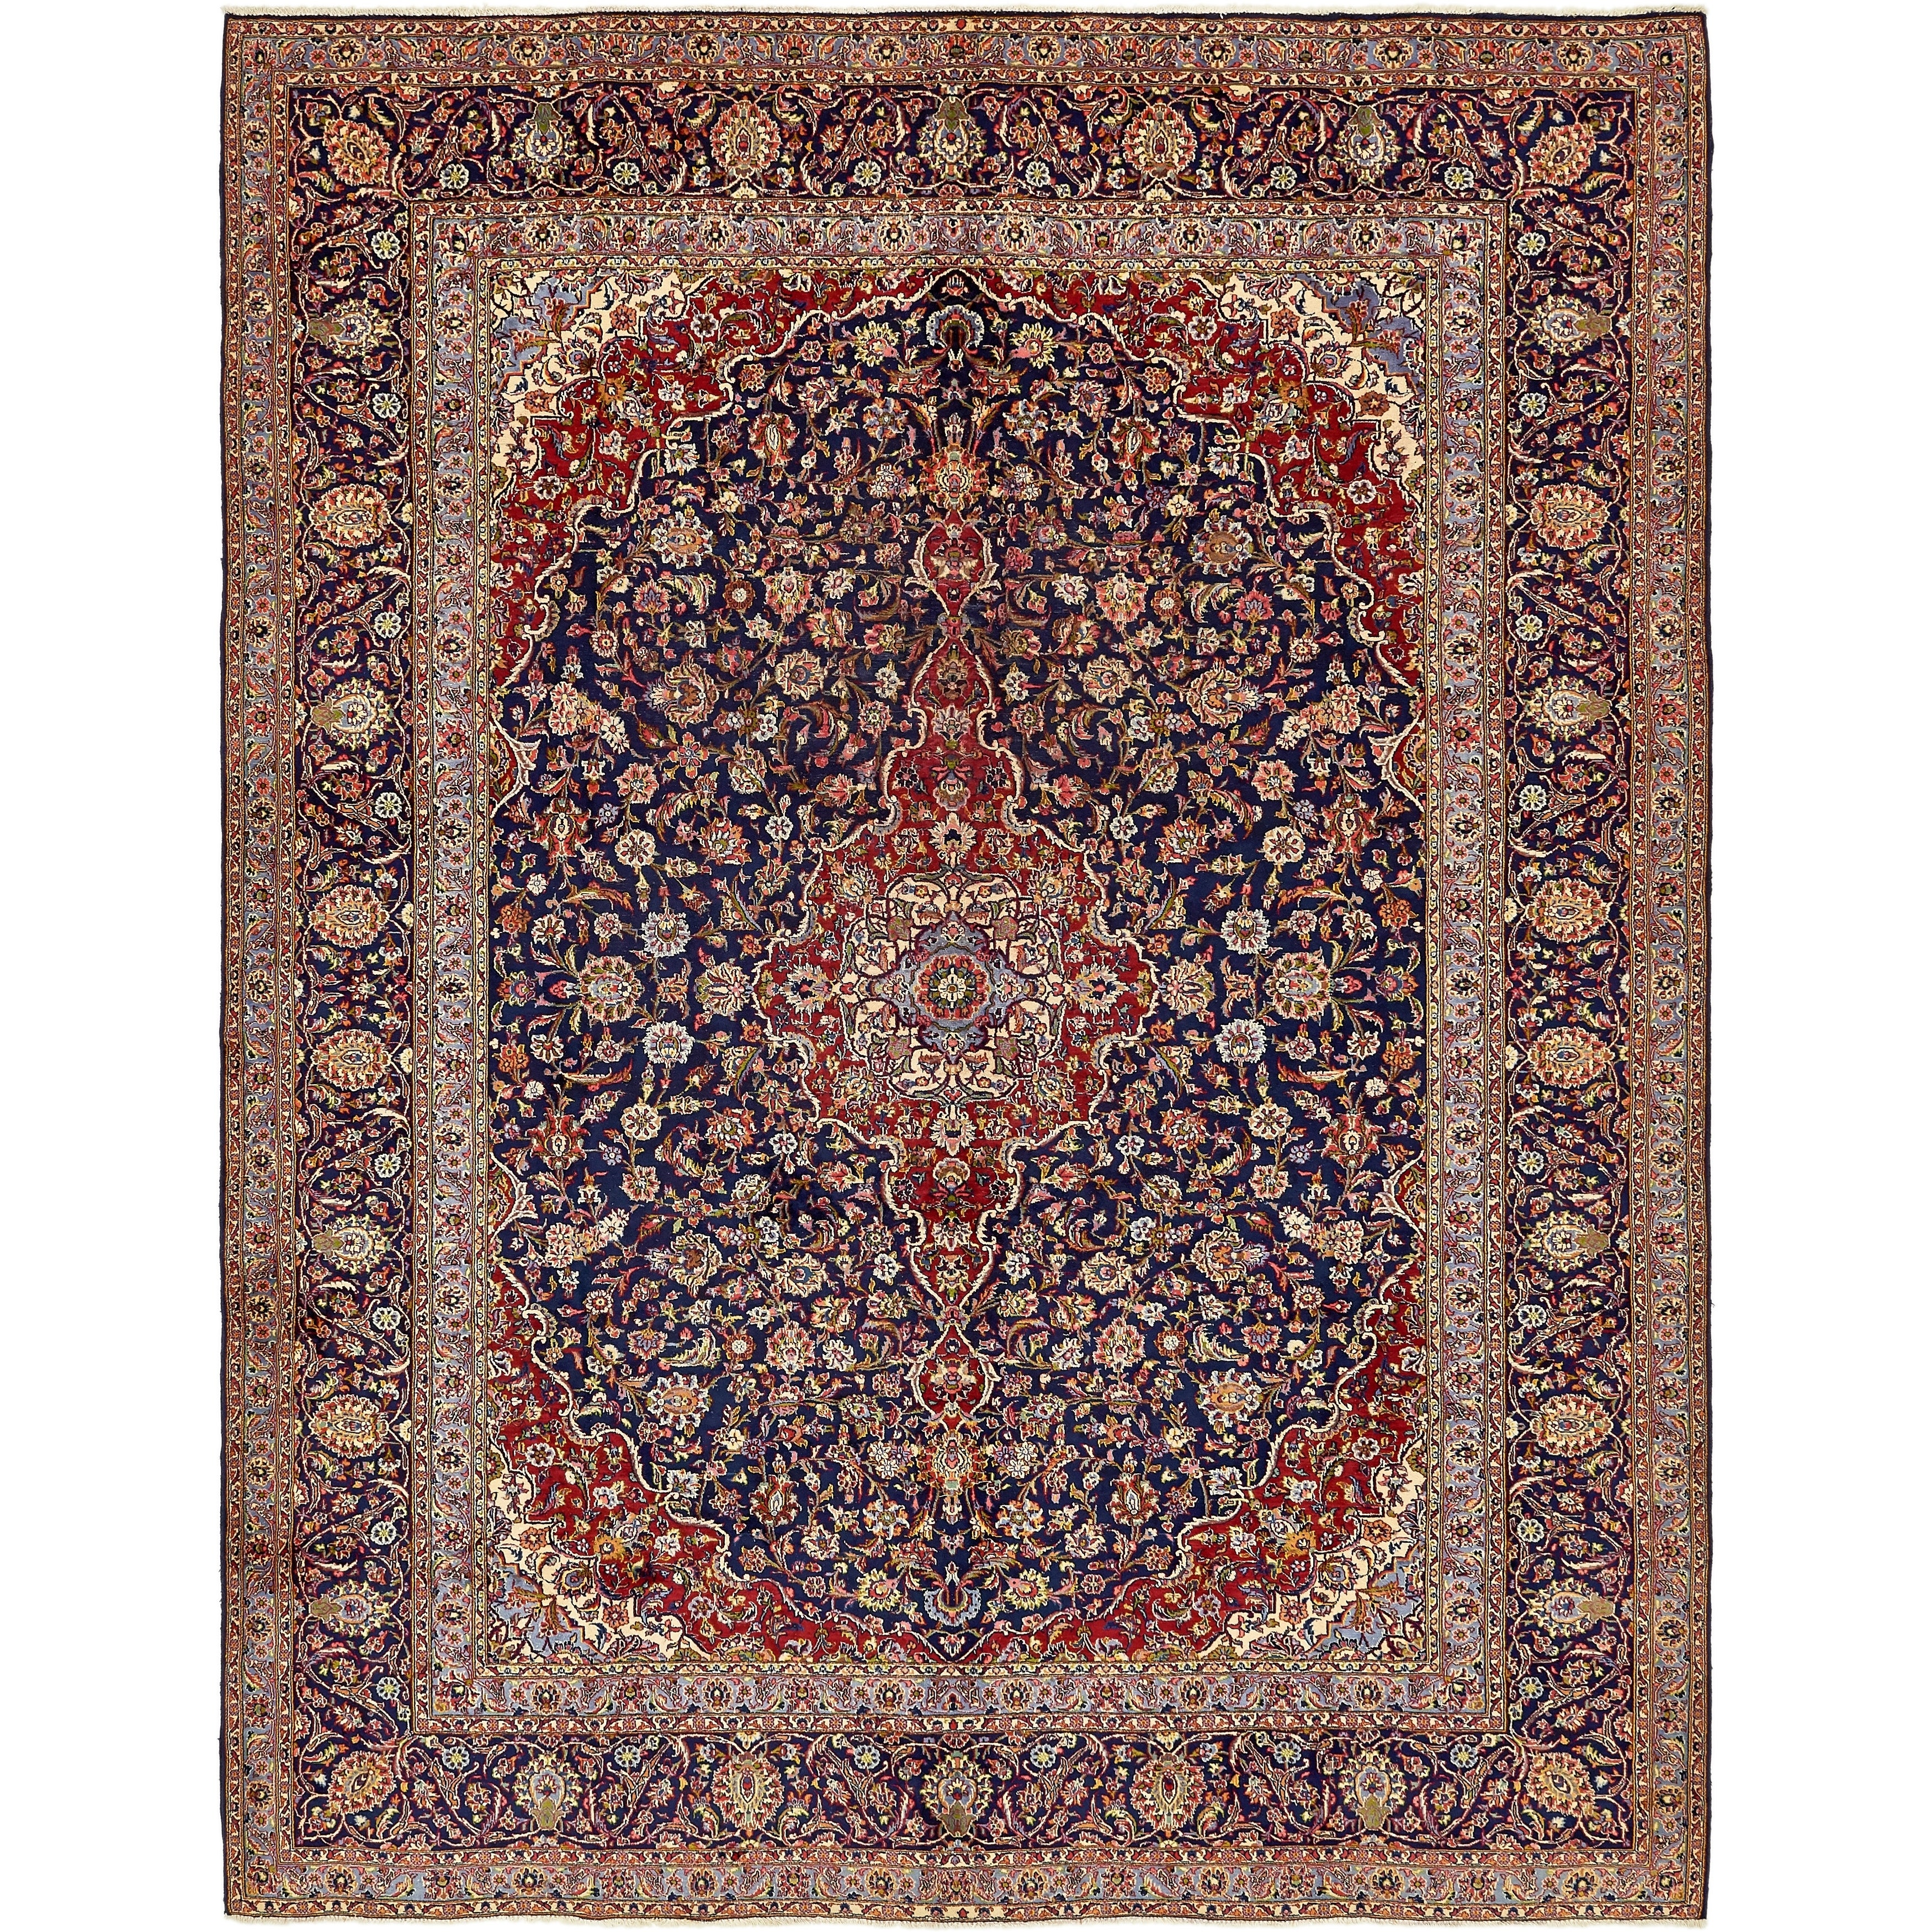 Hand Knotted Kashan Semi Antique Wool Area Rug - 9 10 x 12 7 (Navy blue - 9 10 x 12 7)